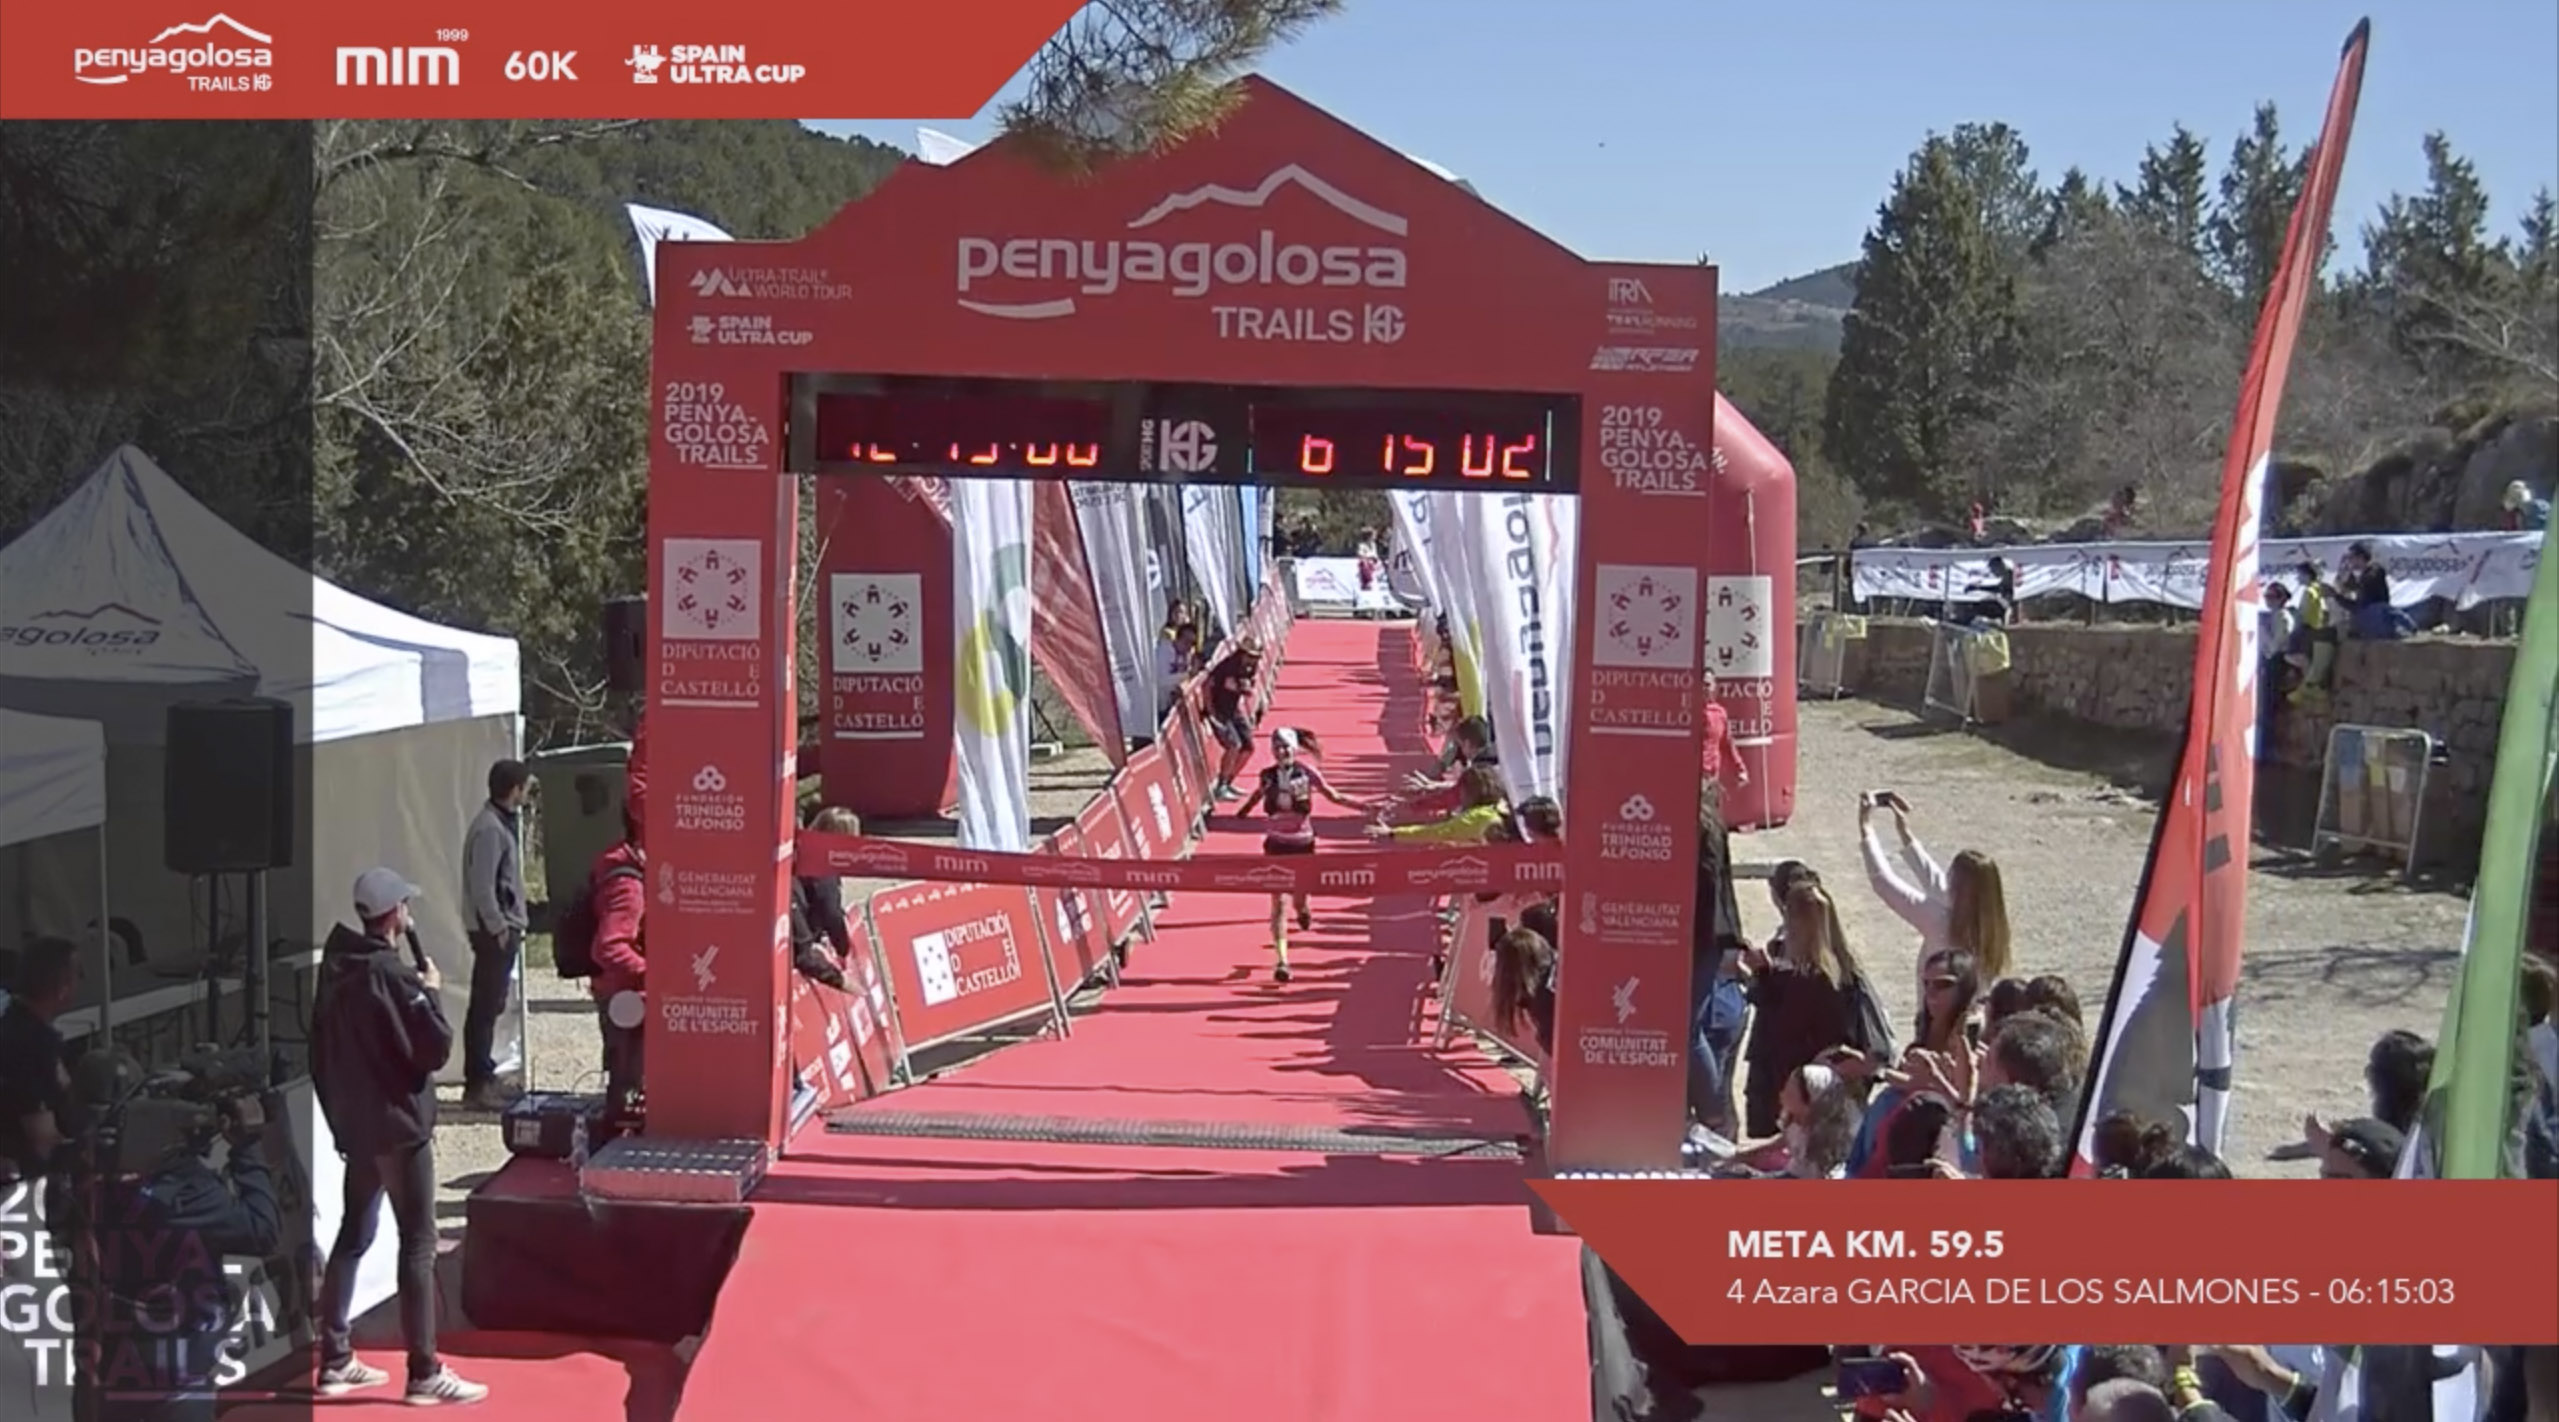 penyagolosa trails video de tu carrera